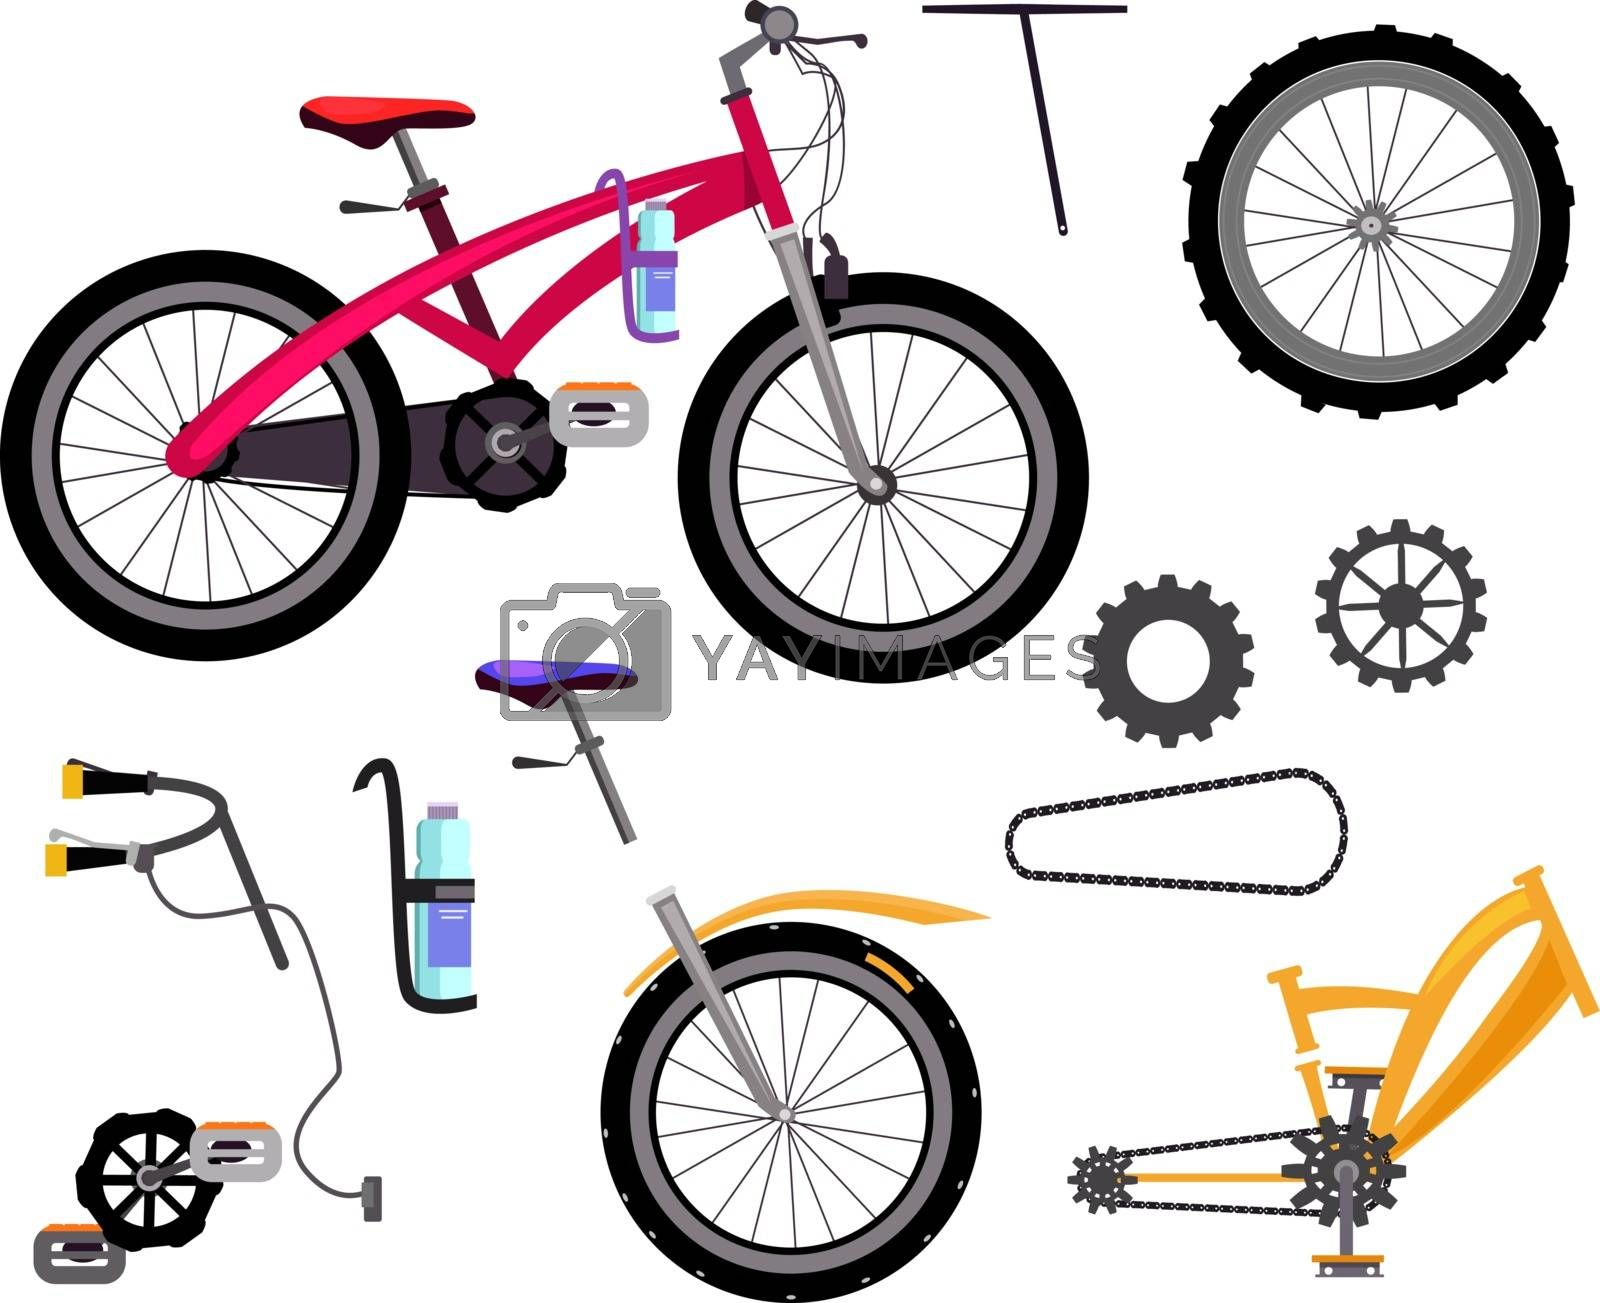 Bicycle details set. Wheel, chain, seat. Driving vehicle concept. Vector illustration can be used for topics like sport, activity, lifestyle